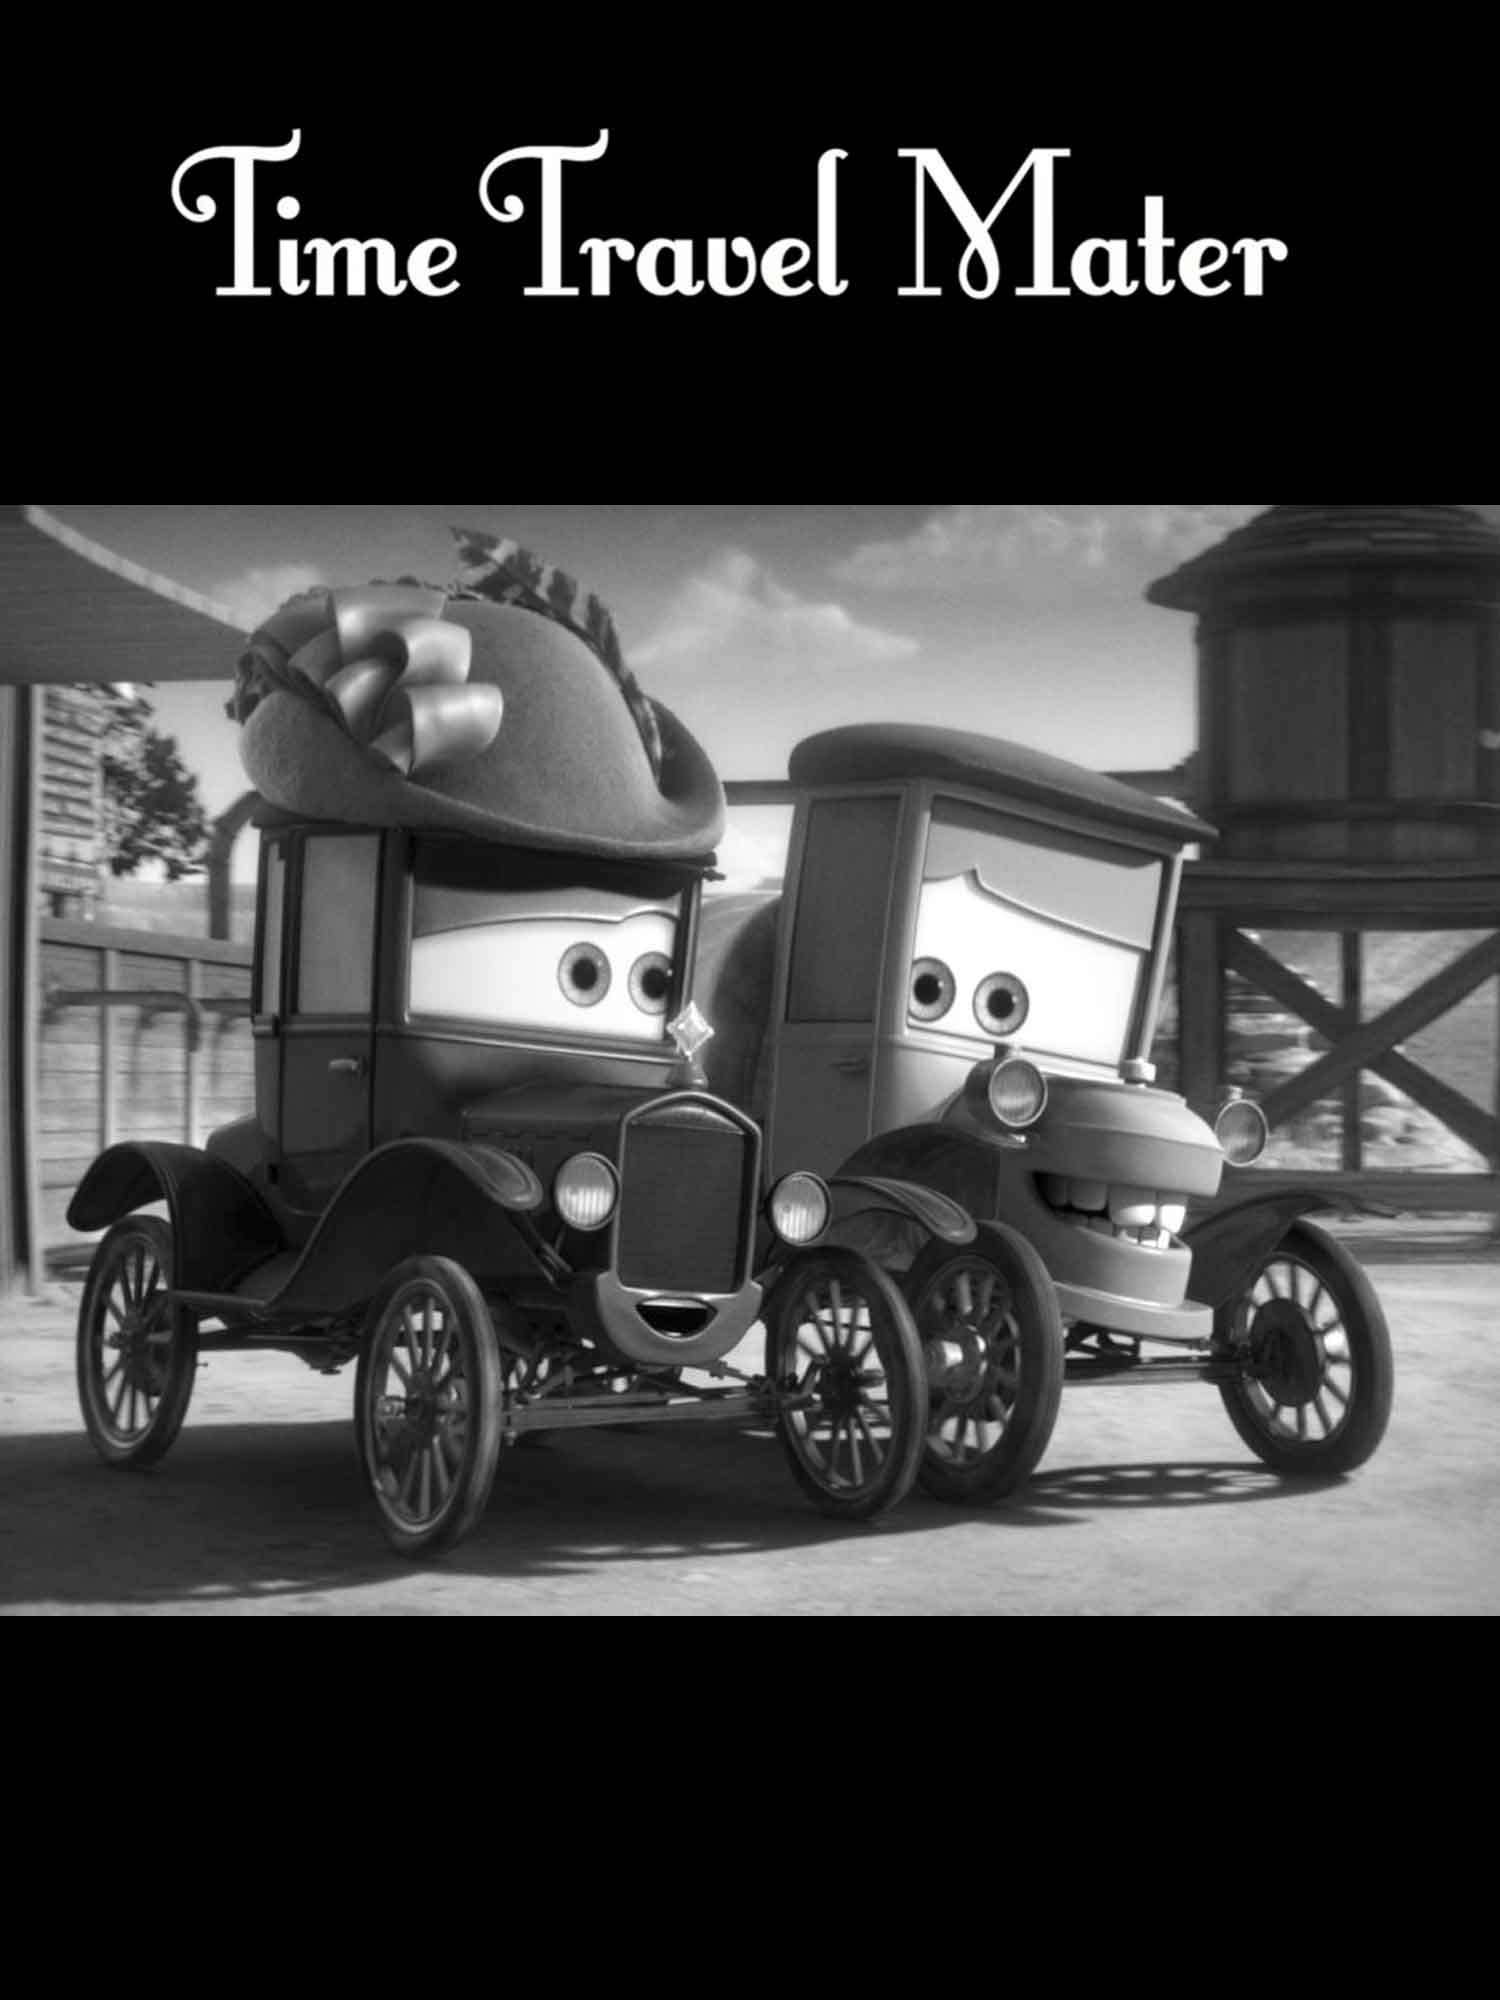 Pixar disney cars toon time travel mater martin remonte le temps affiche poster